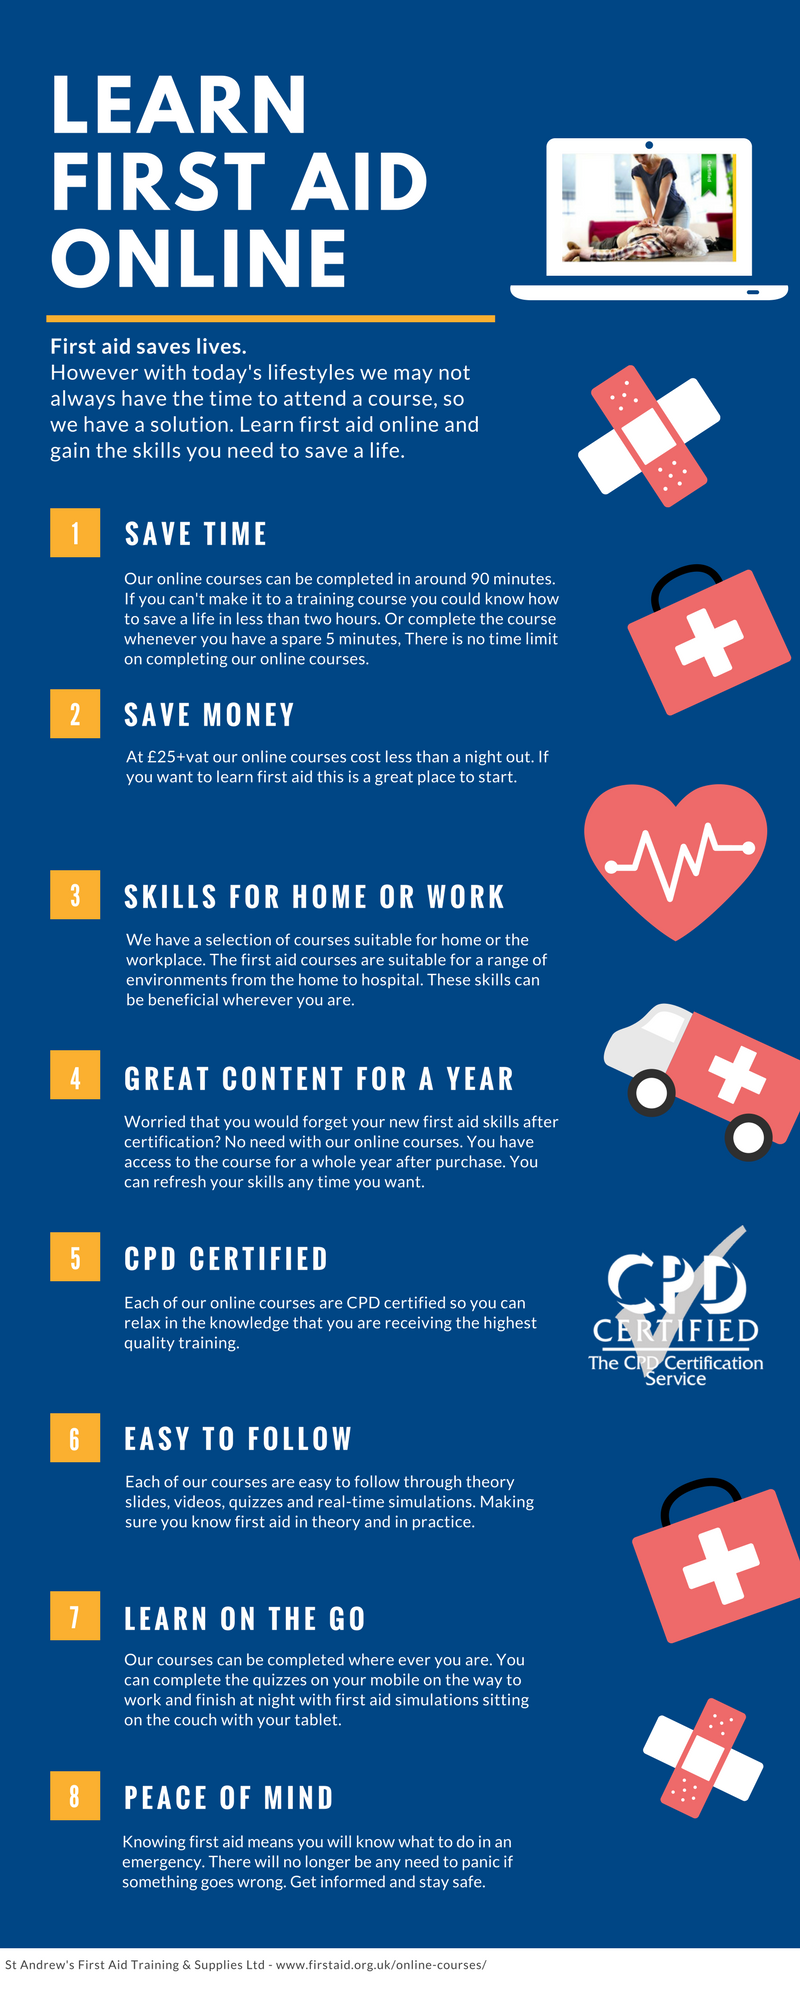 Benefits of First Aid Online Courses - The Reason to Learn First Aid